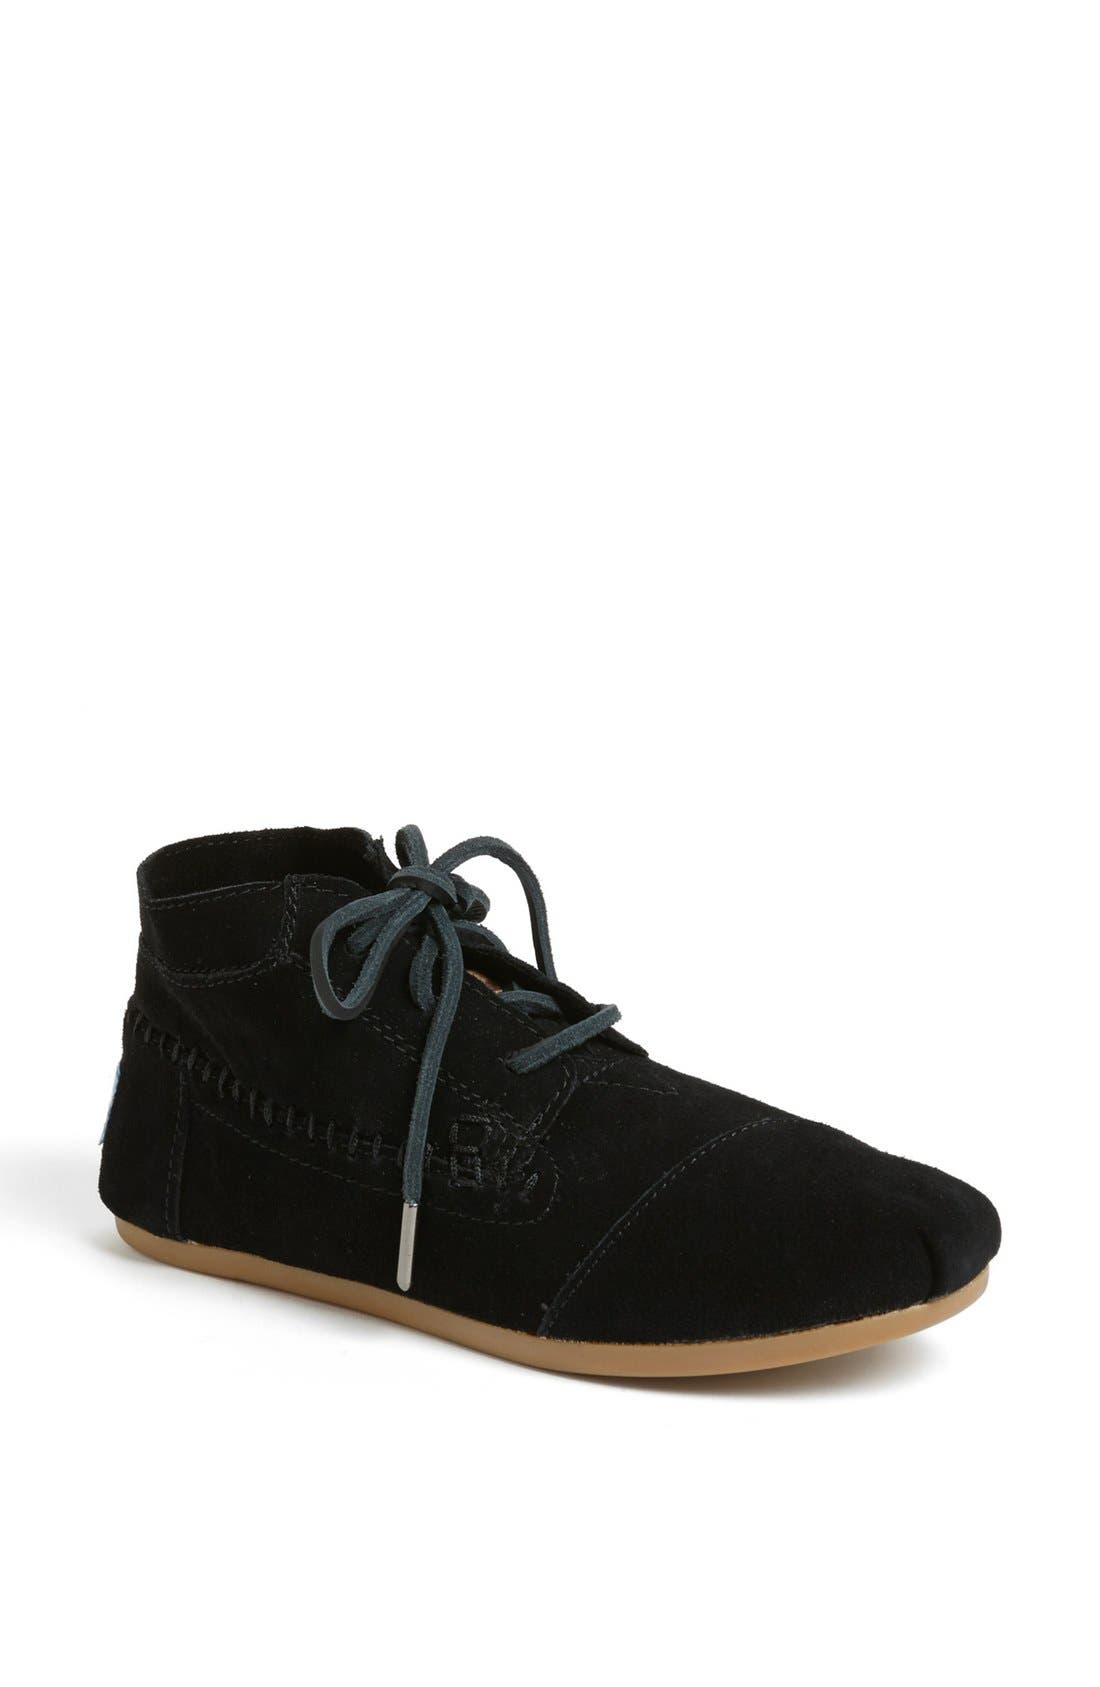 Main Image - TOMS Suede Boot (Women)